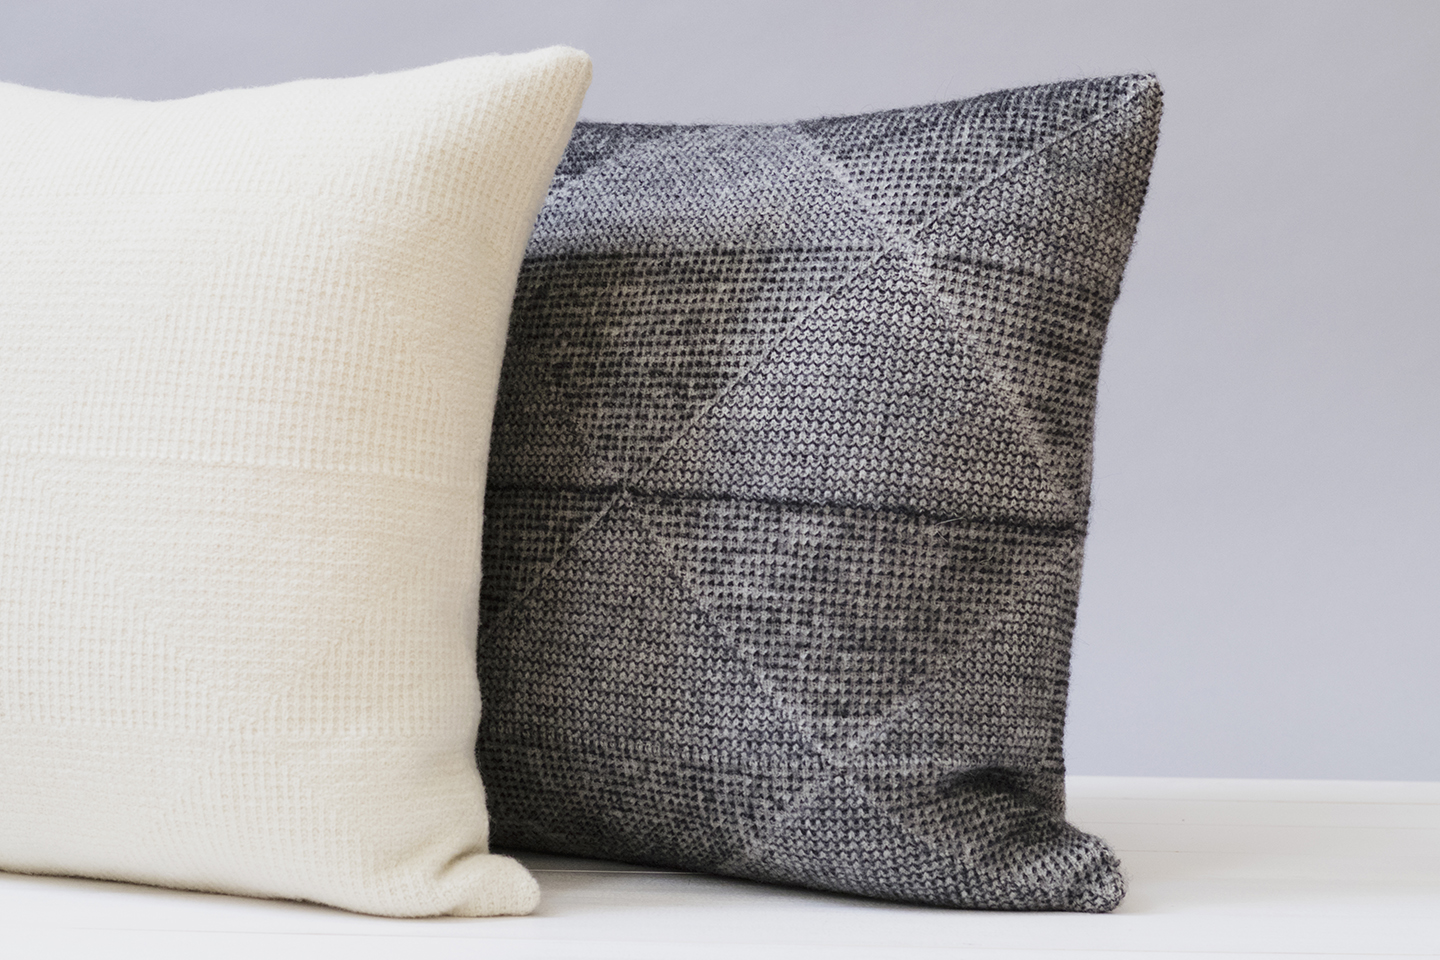 Textured Triangles Pillows for Echoview